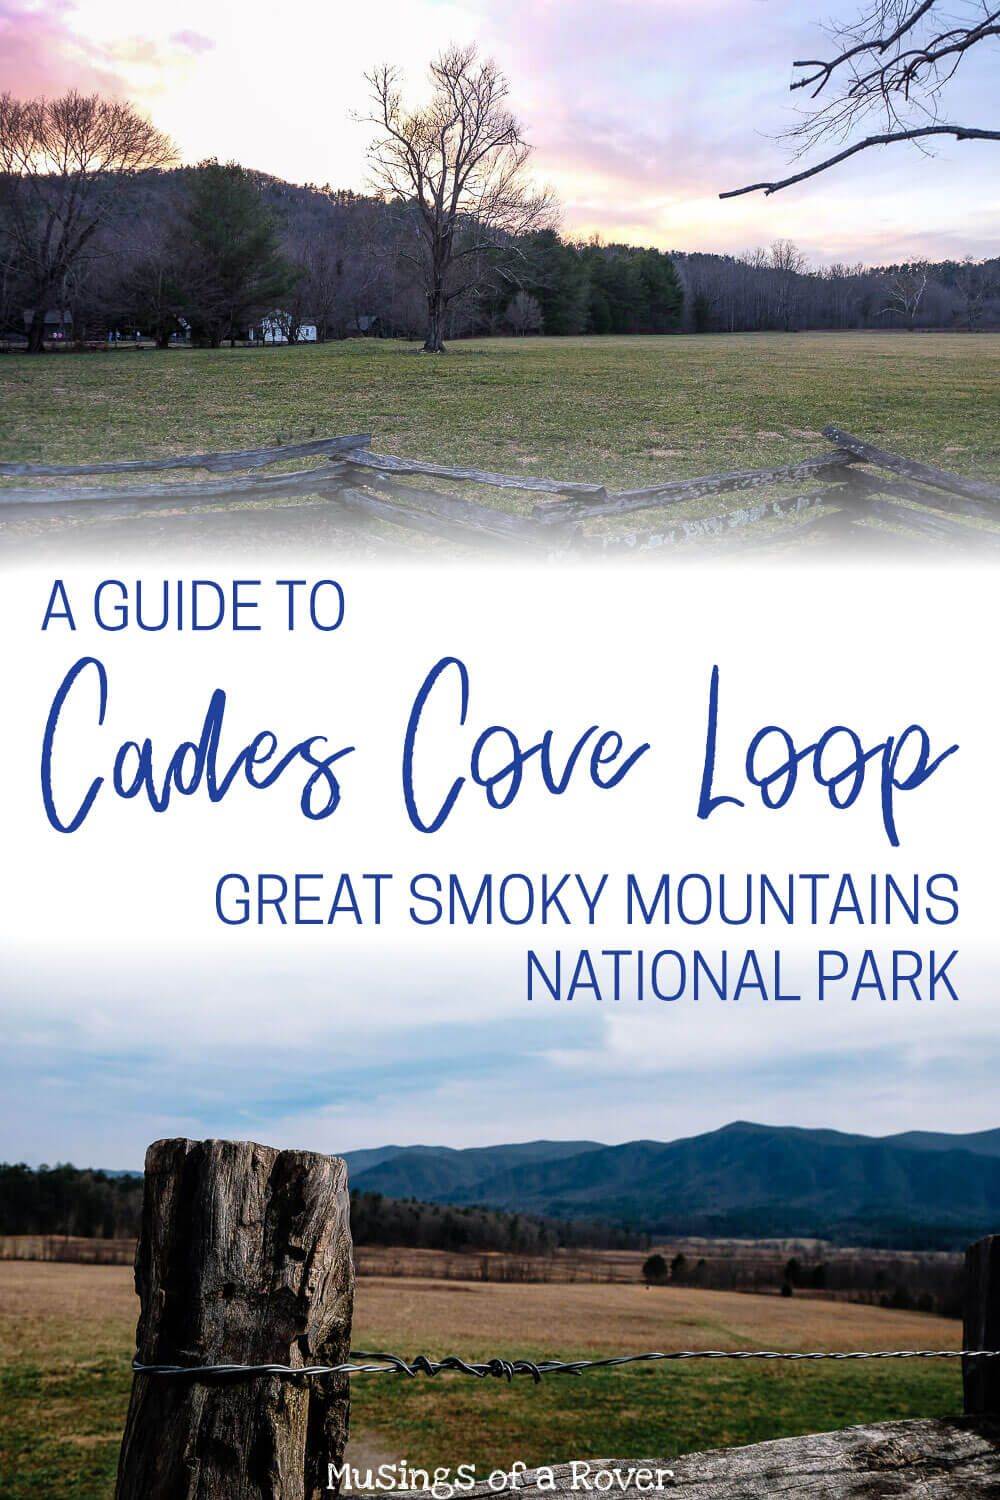 Headed to Great Smoky Mountains National Park? This popular loop road is one of the best things to do in the park! Though be warned that it can sometimes be crowded. Find out what you need to know before you head out to Cades Cove to beat the crowds and hit the must-see spots along the way.